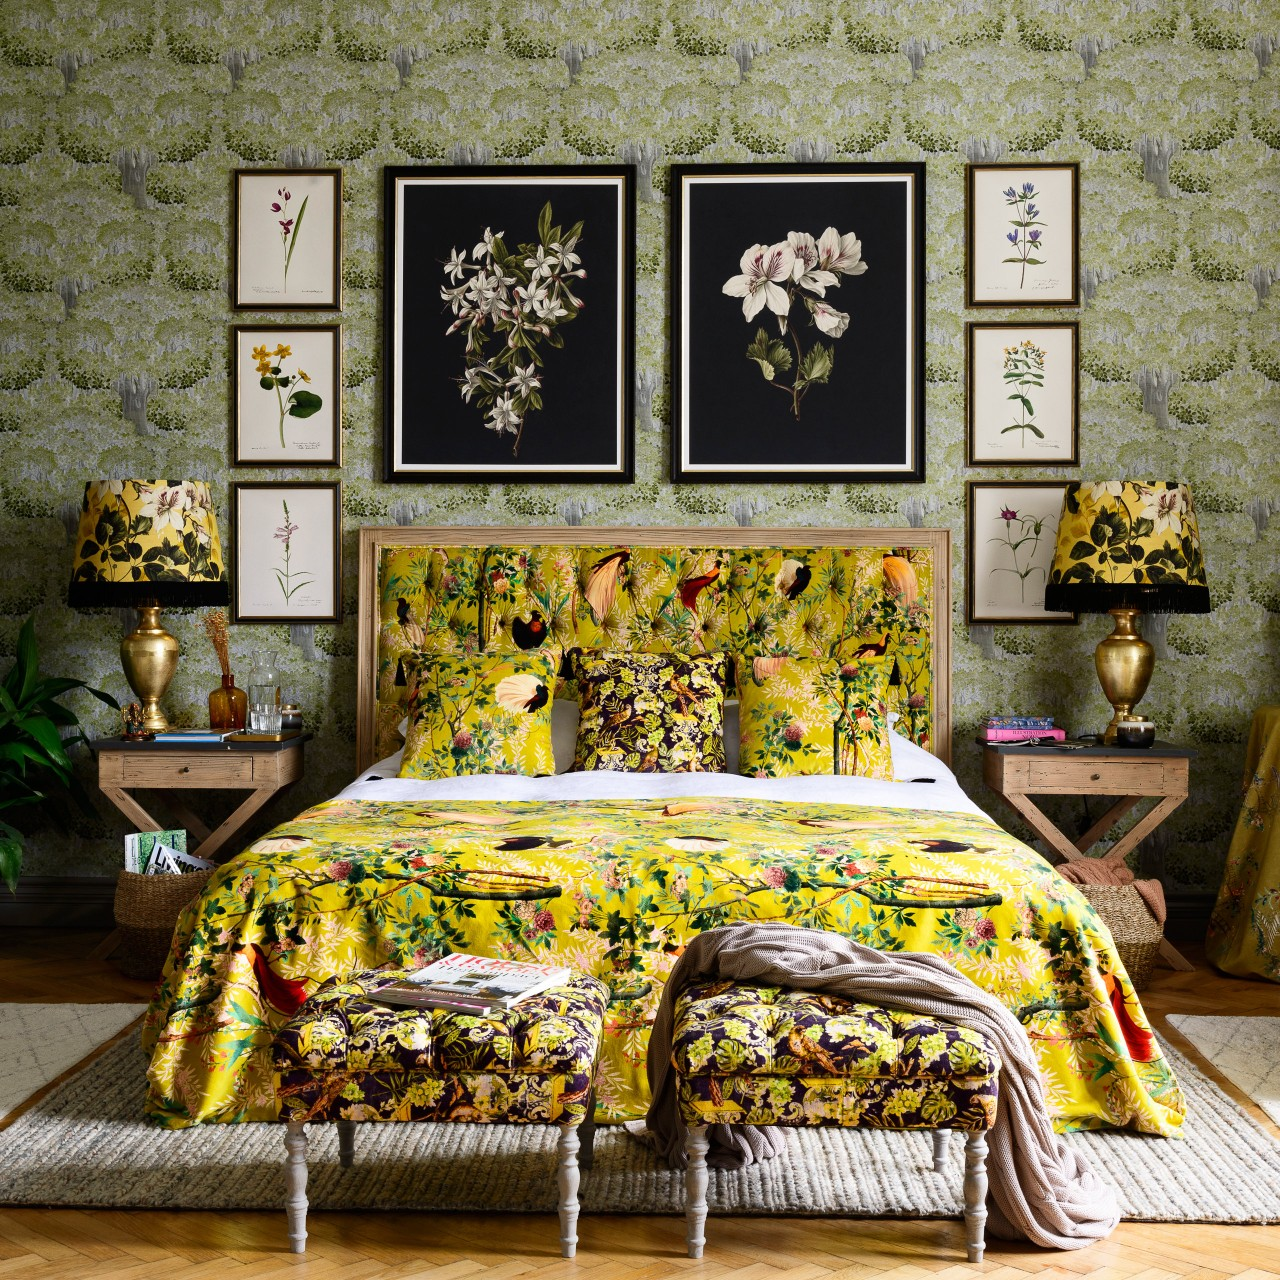 ANTAL Bed - ROYAL GARDEN Green Velvet